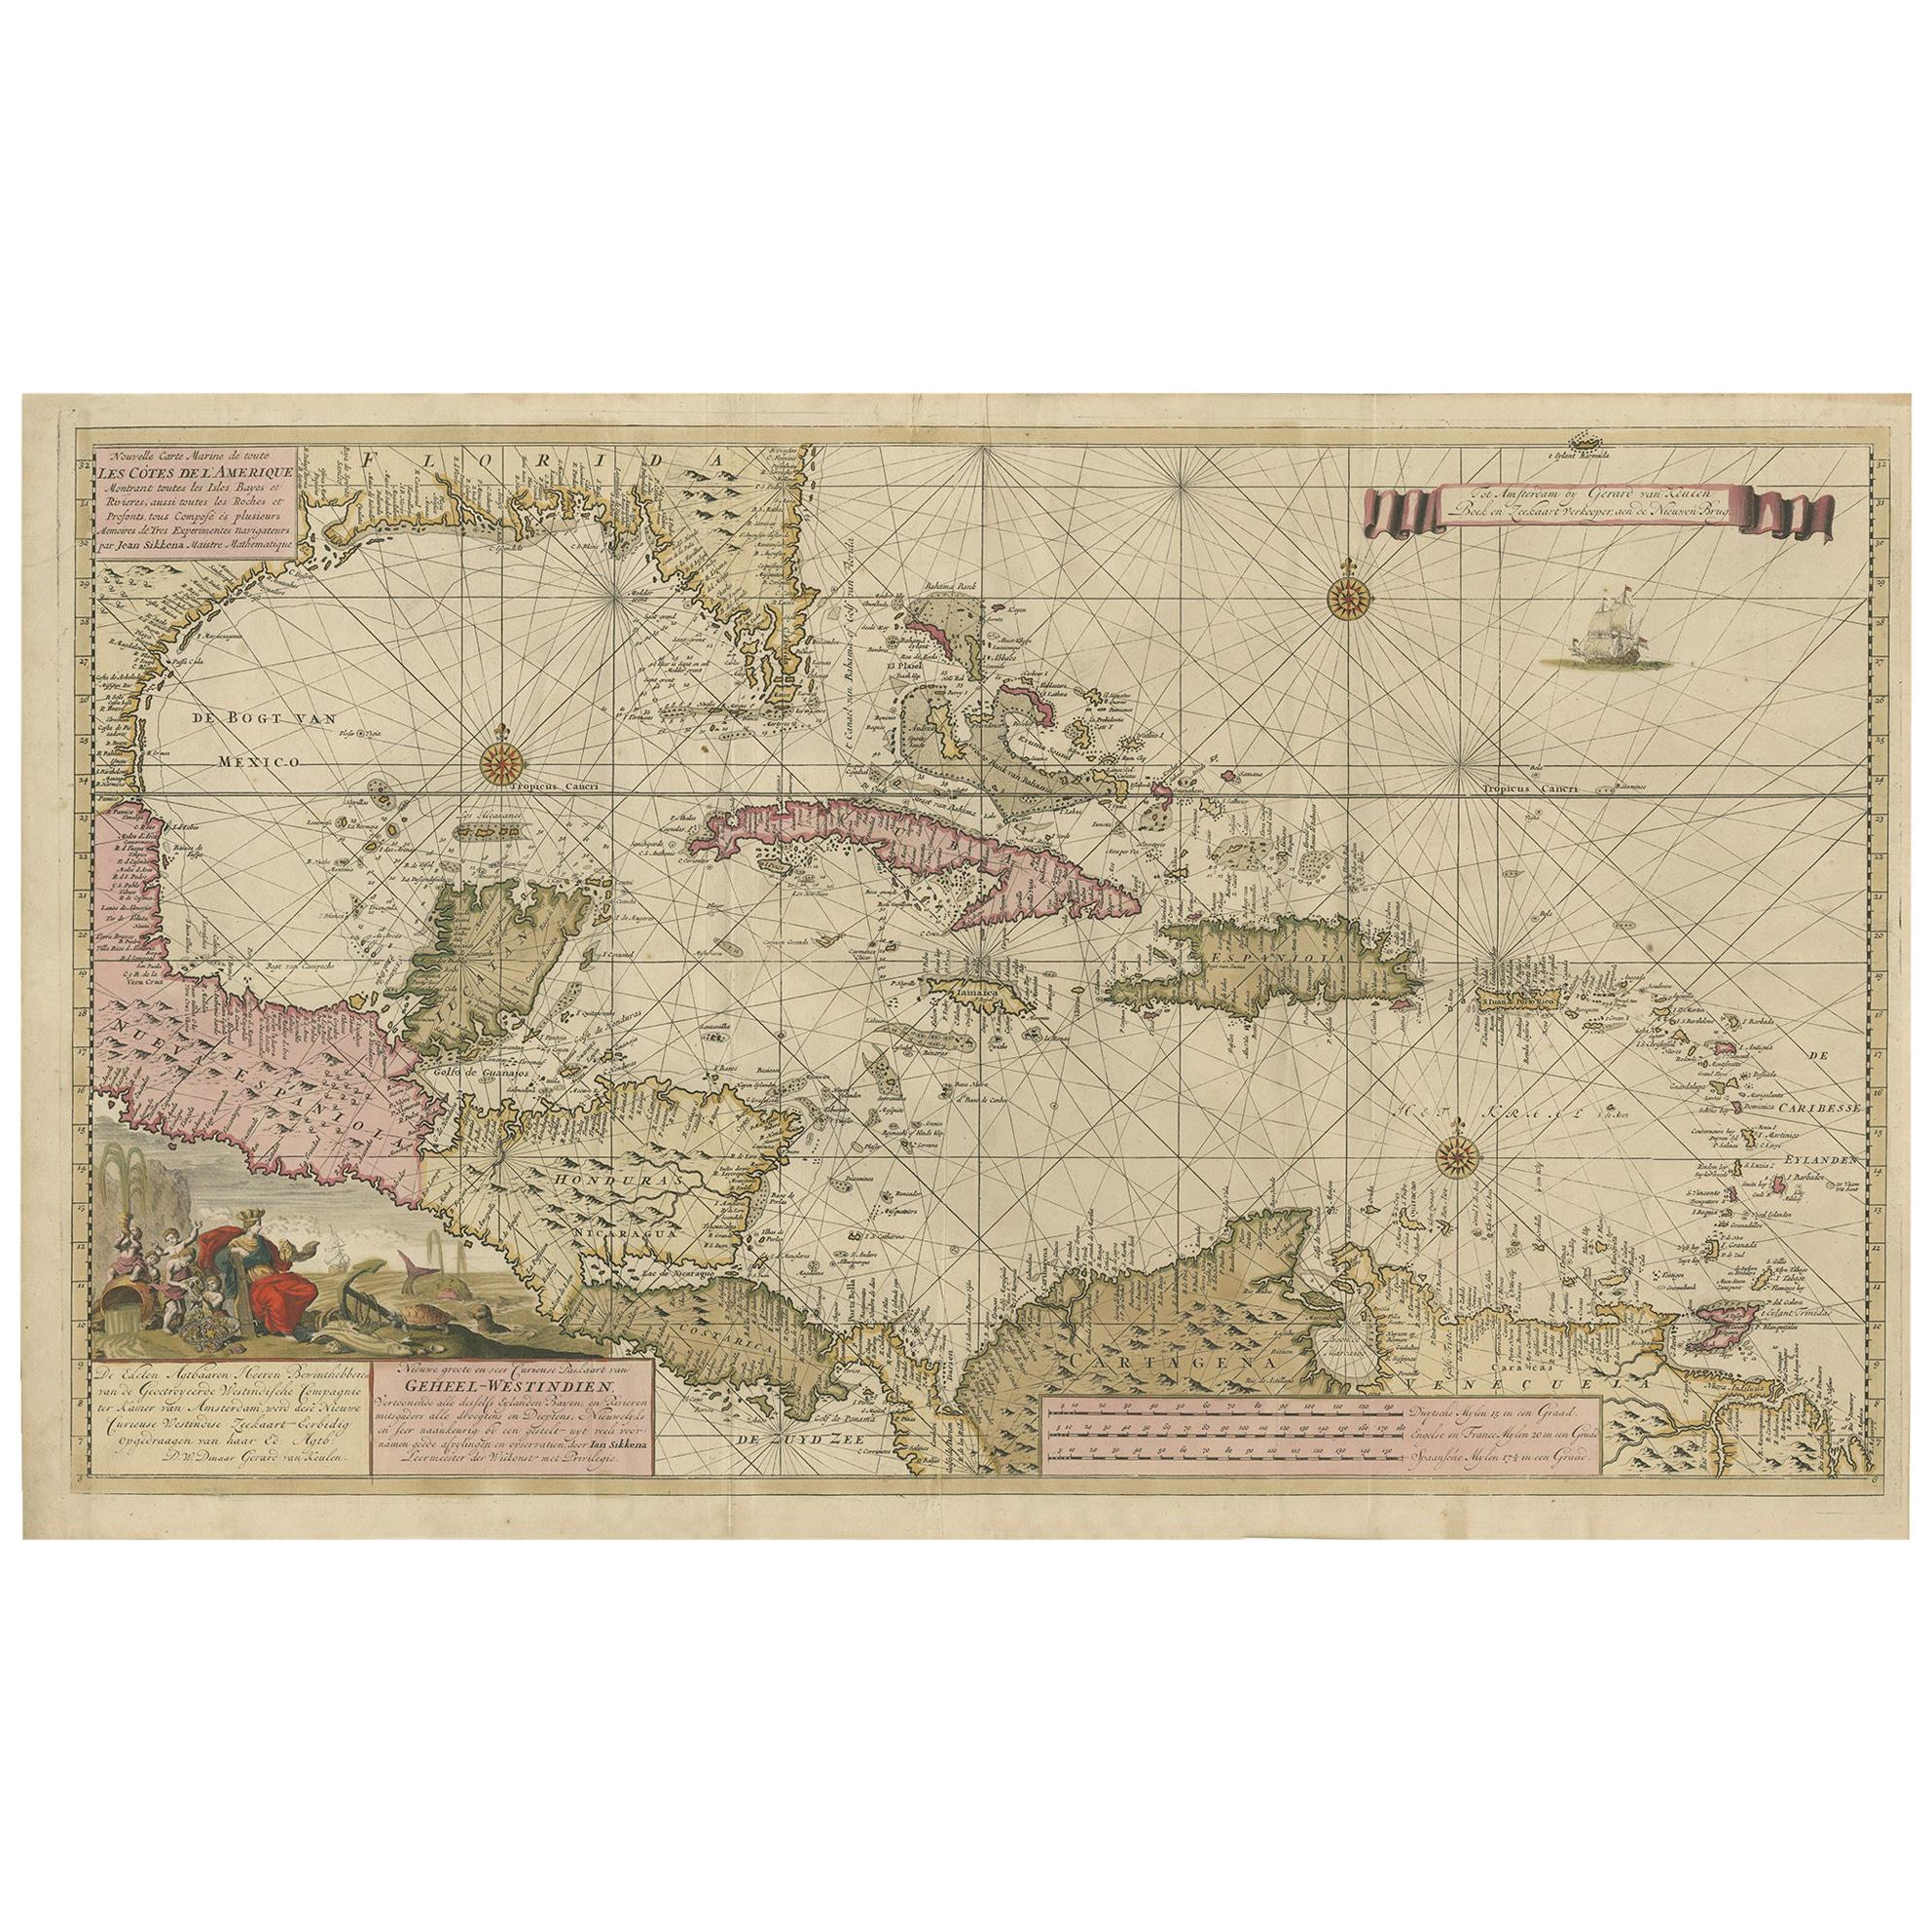 Map of Florida, the Gulf Coast, Caribbean and Central America, circa 1728